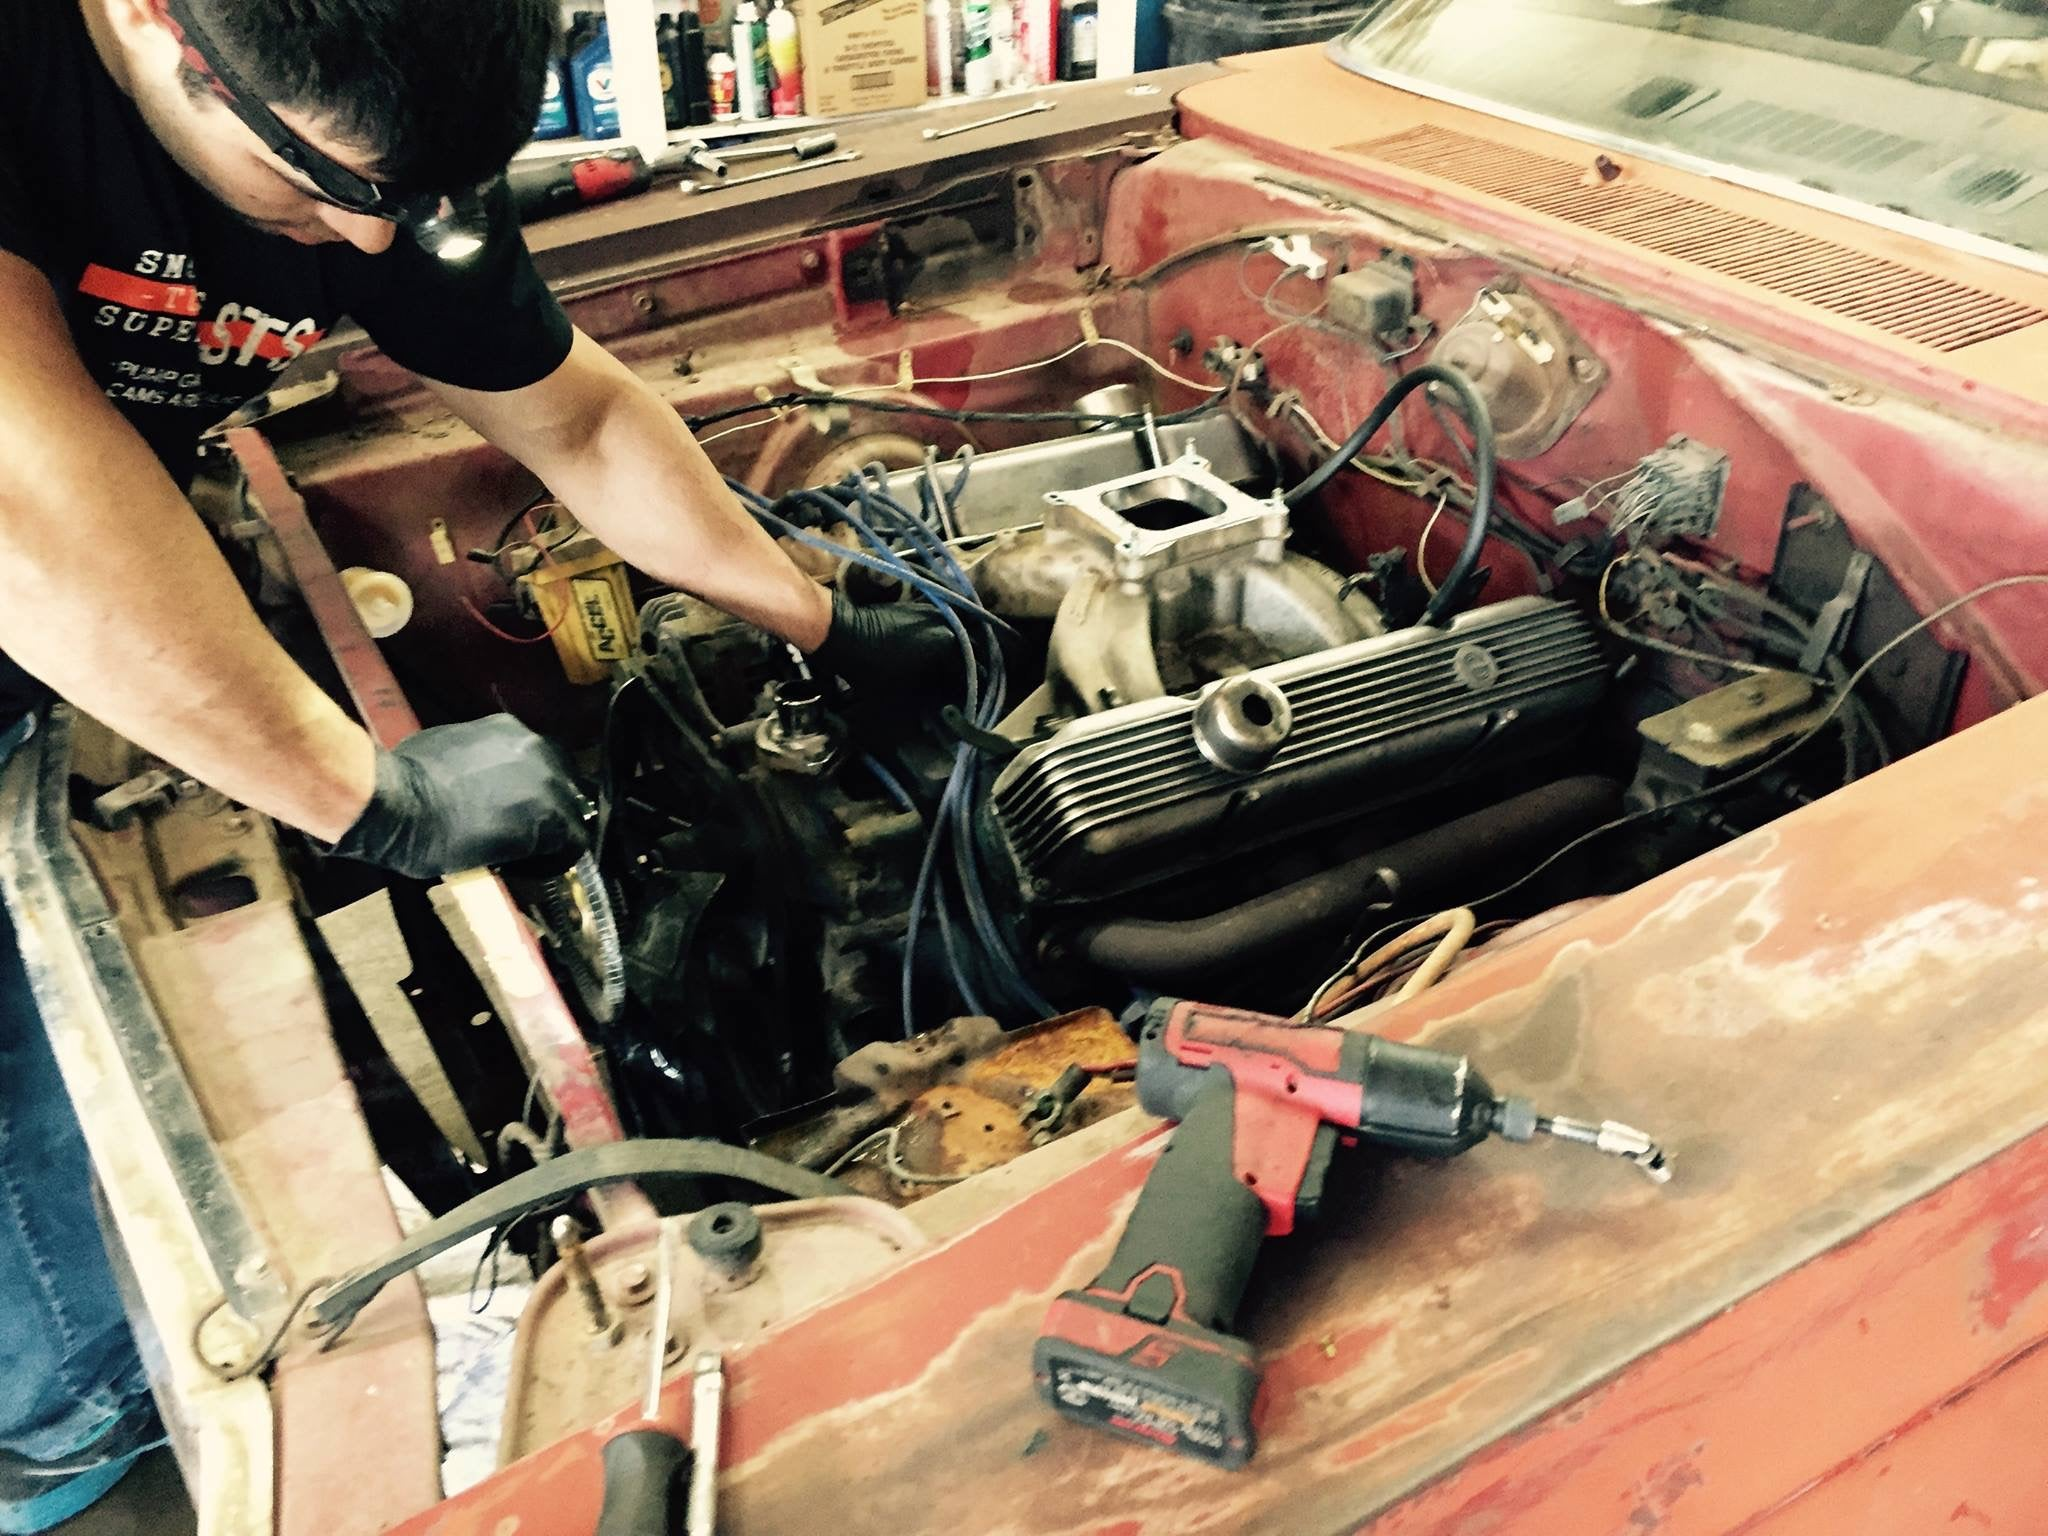 Project Tetanus: Wrenching in the Early Days